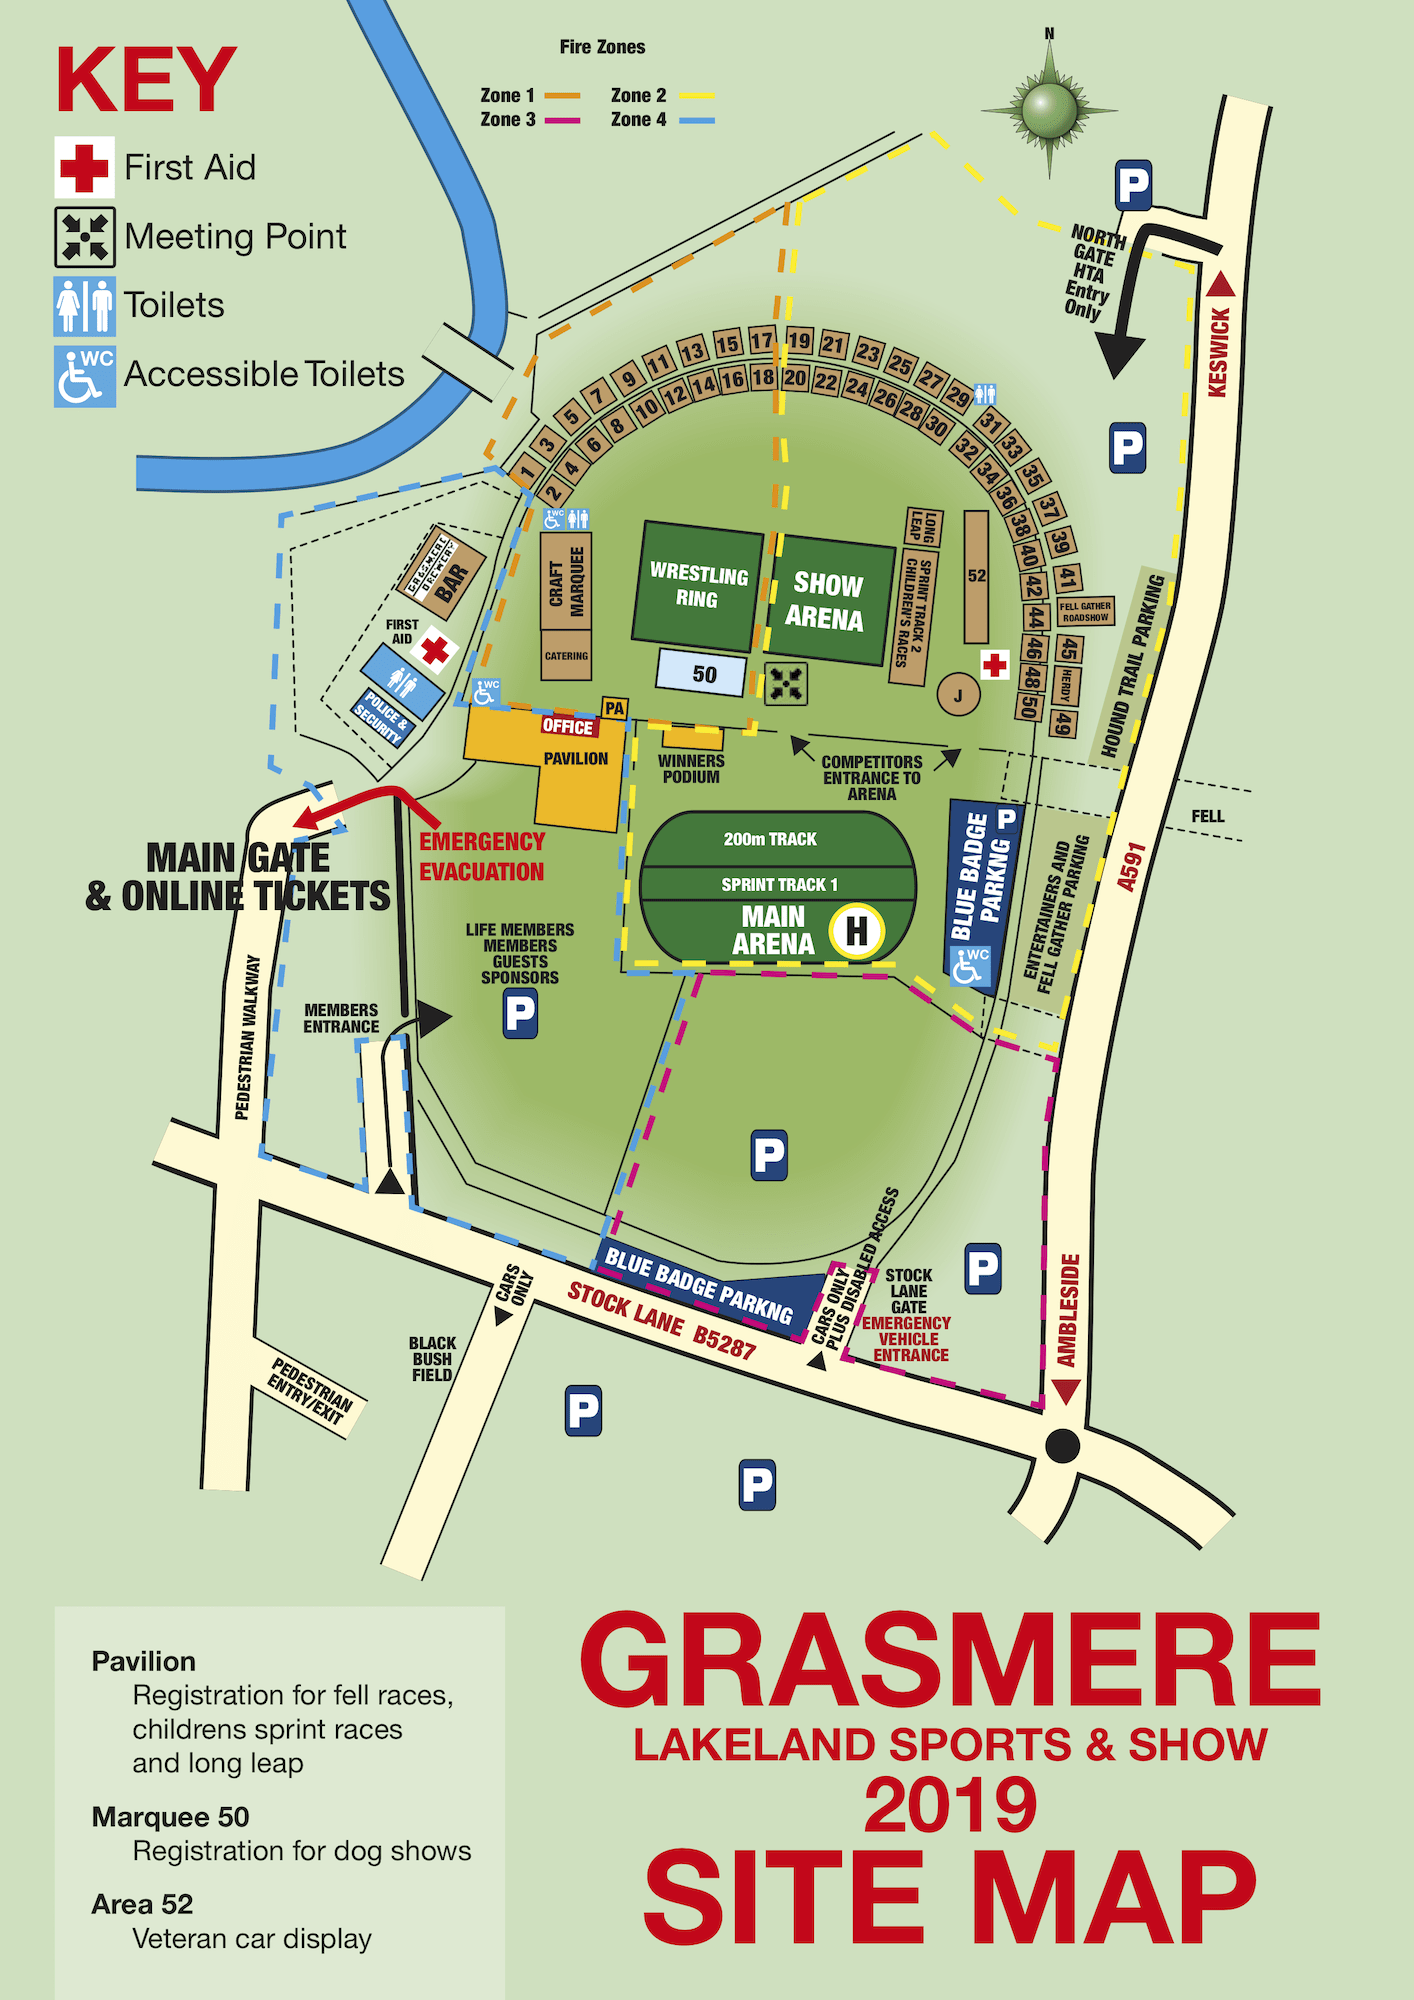 Grasmere Sports Site Plan 2019